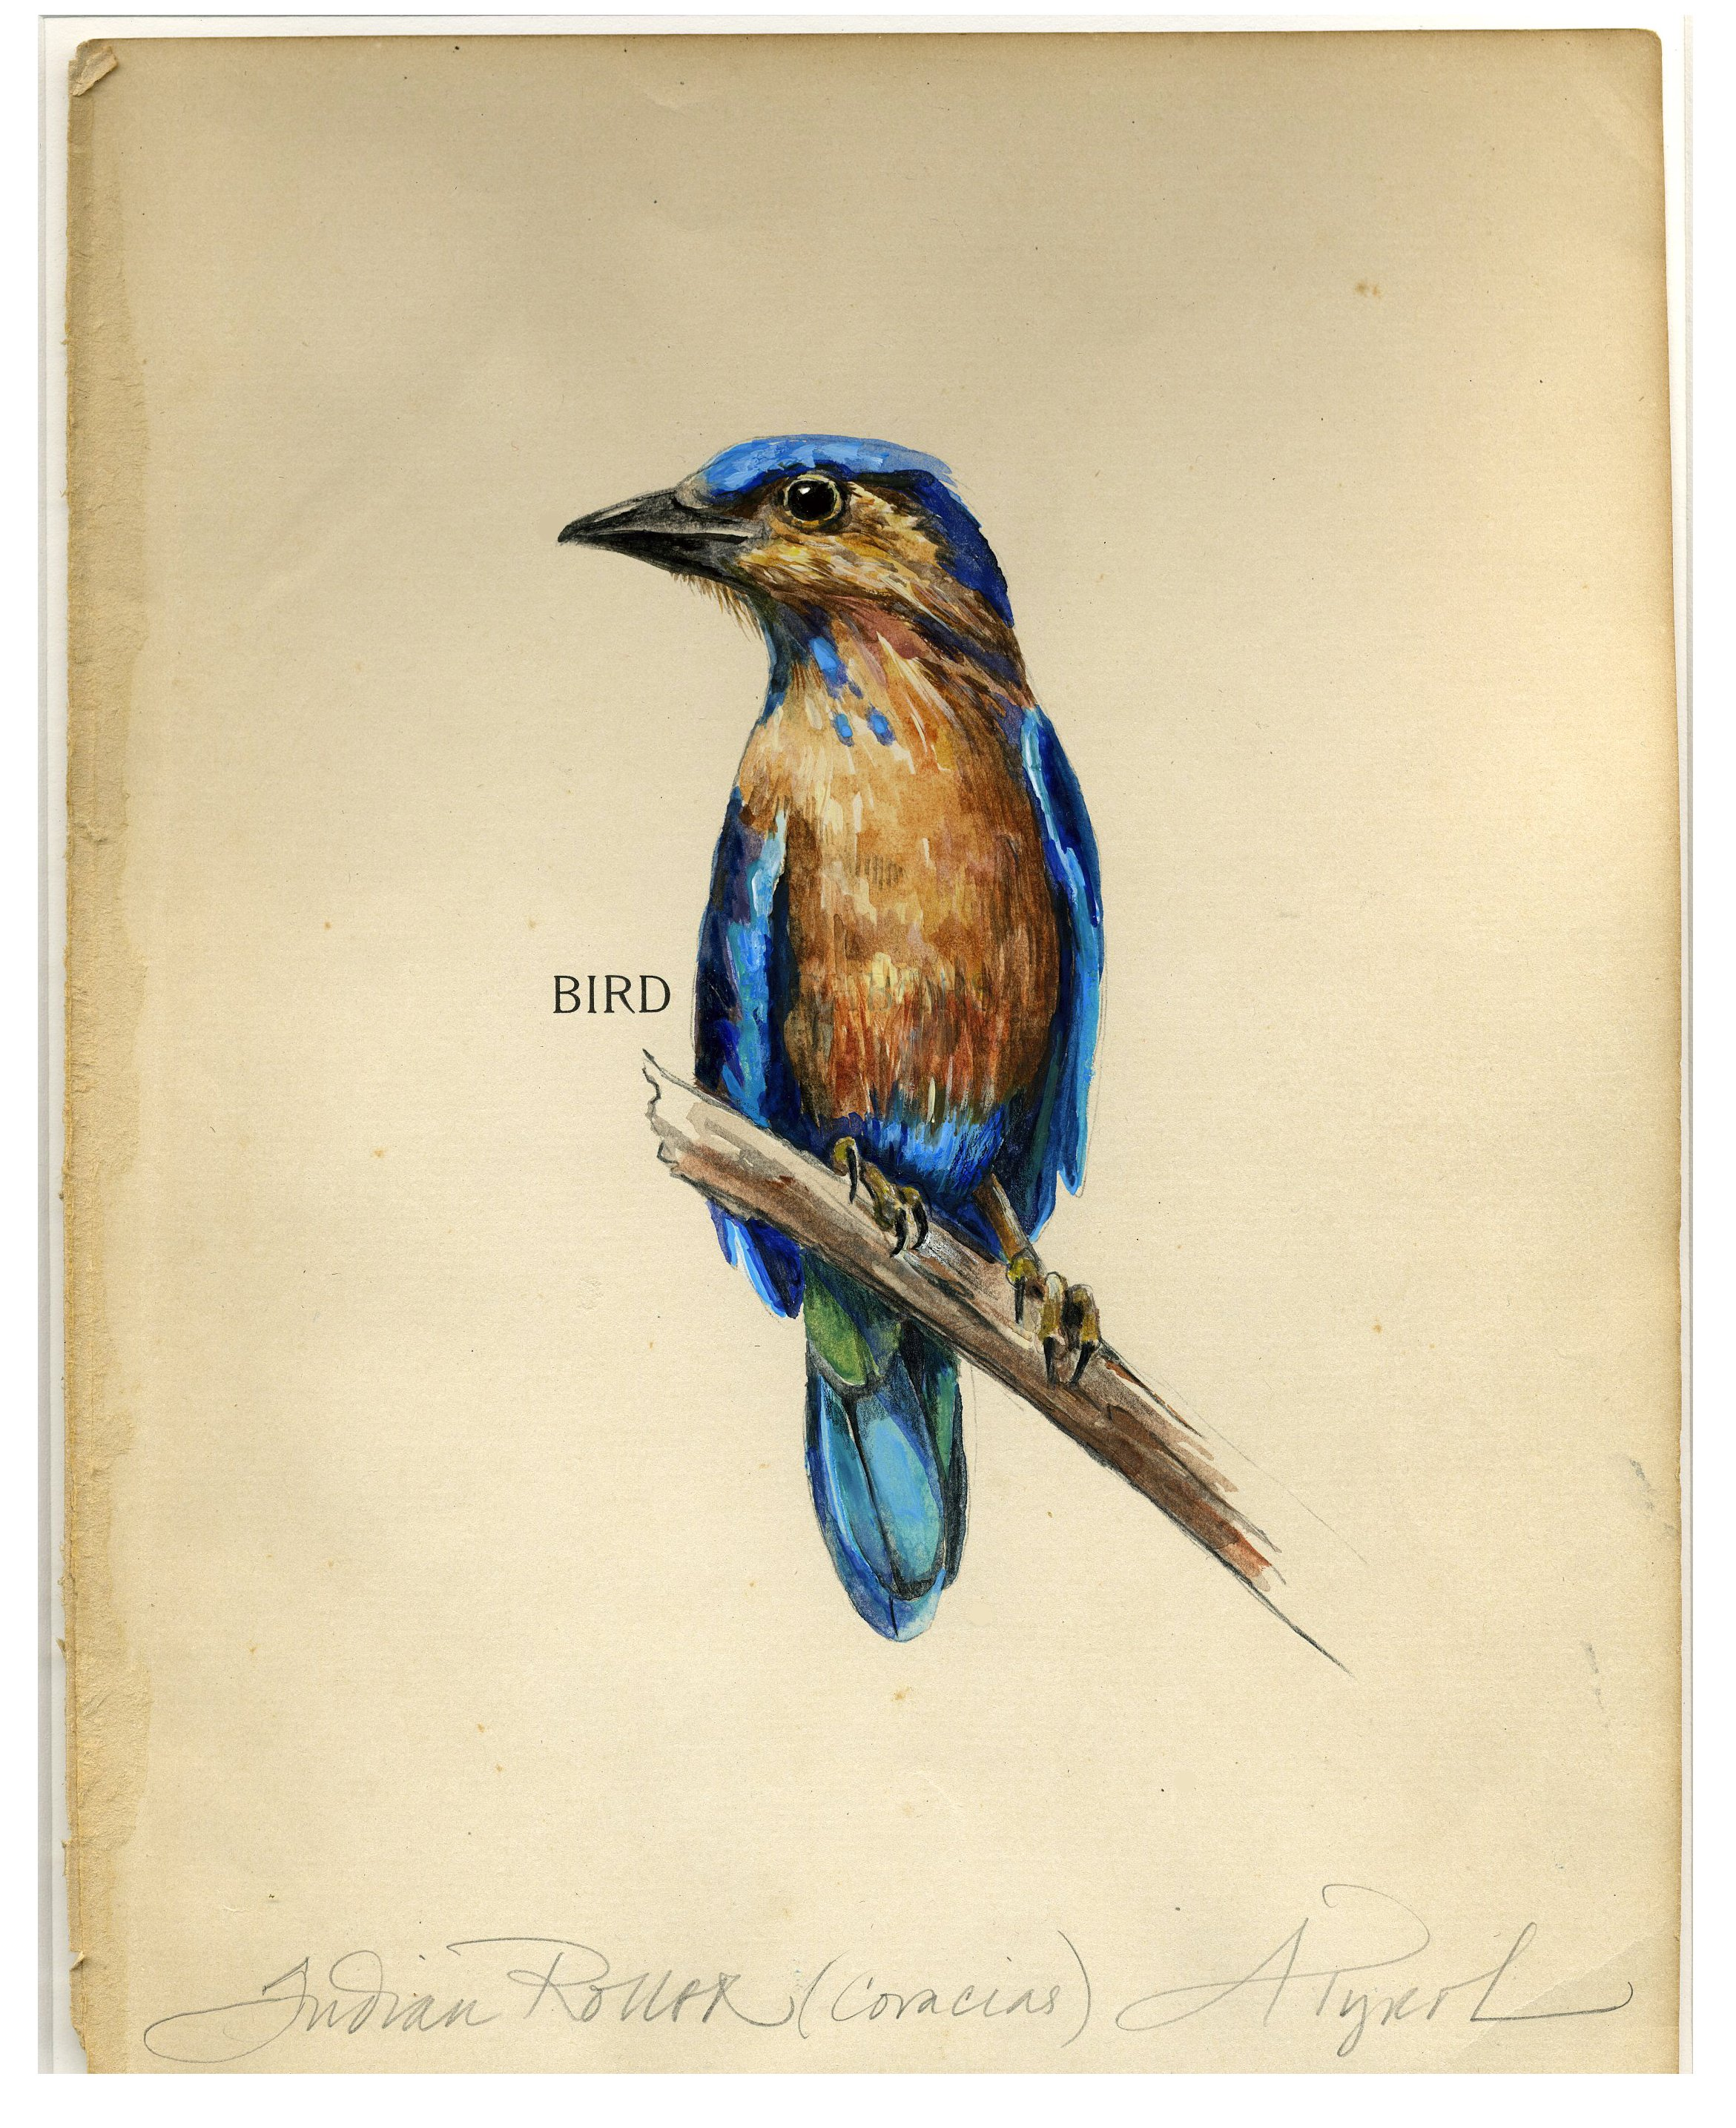 """Indian Roller"" by Adelaide Tyrol, watercolor on vintage book page, 9x7"